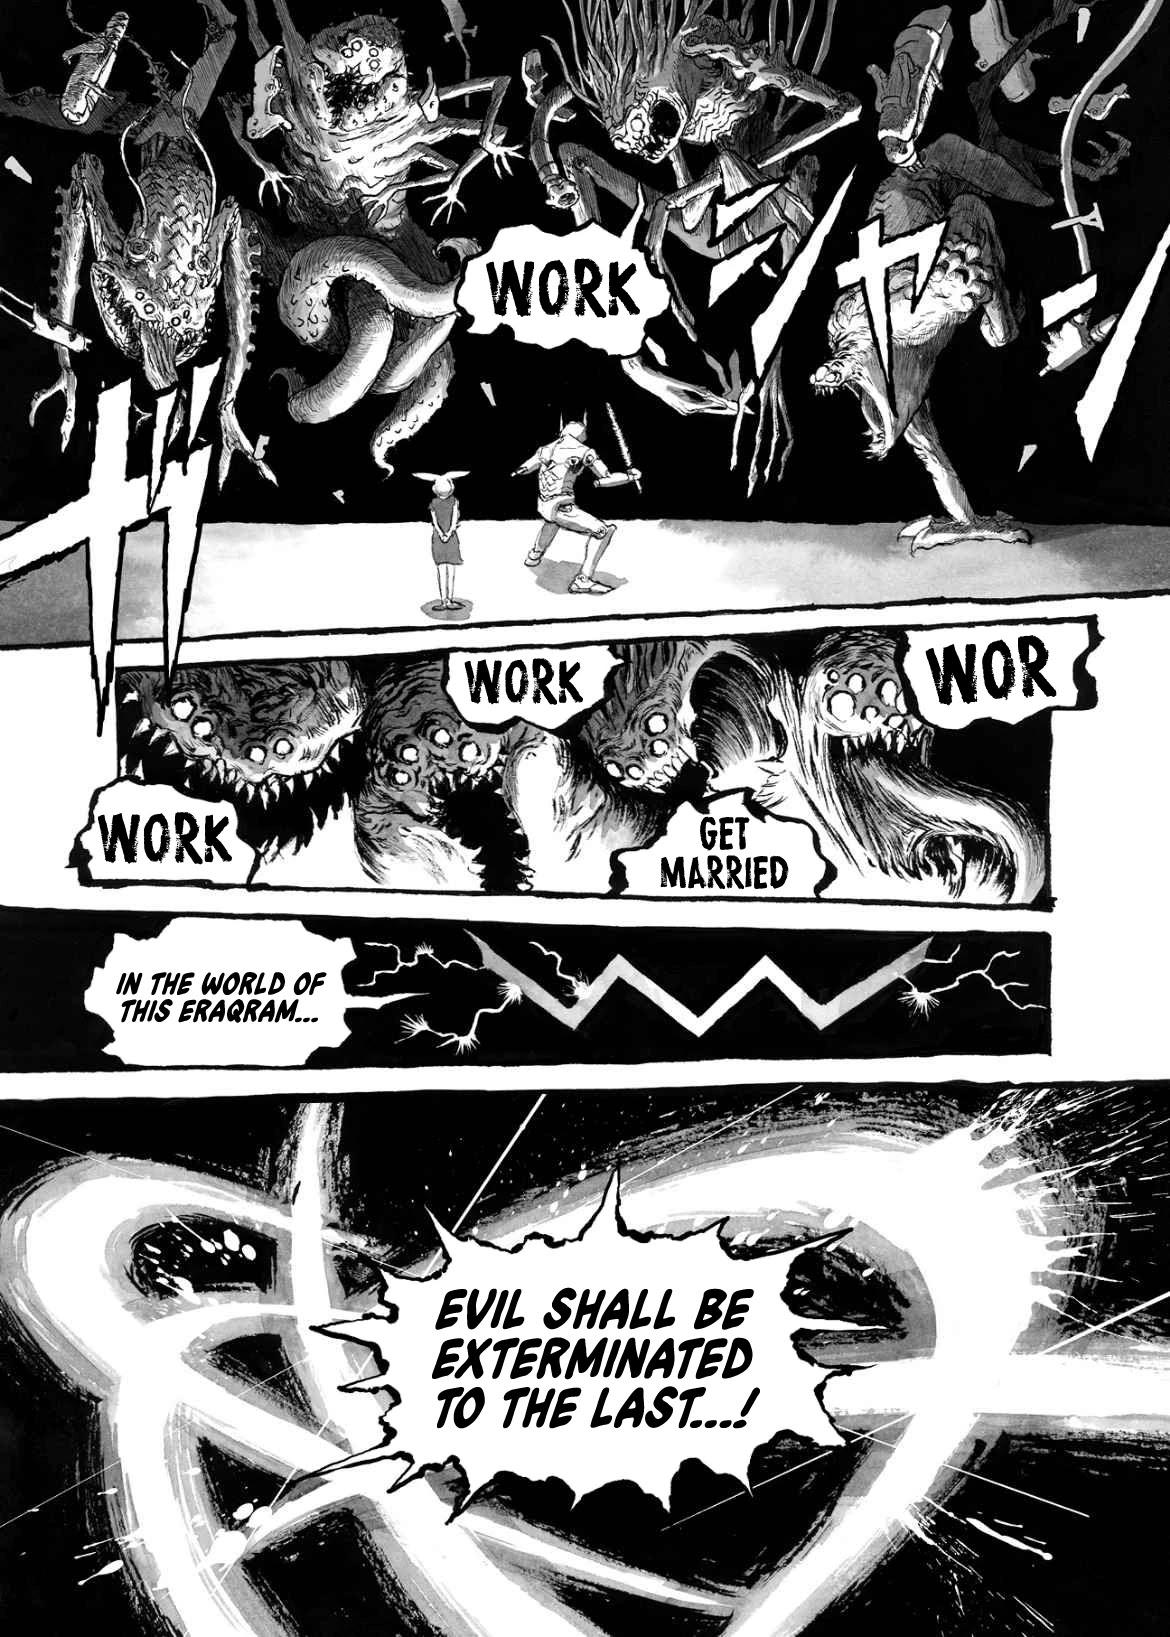 Bibliomania Chapter 3: The Bird Of Room 413 And The Hero Of Room 385 page 24 - Mangakakalots.com